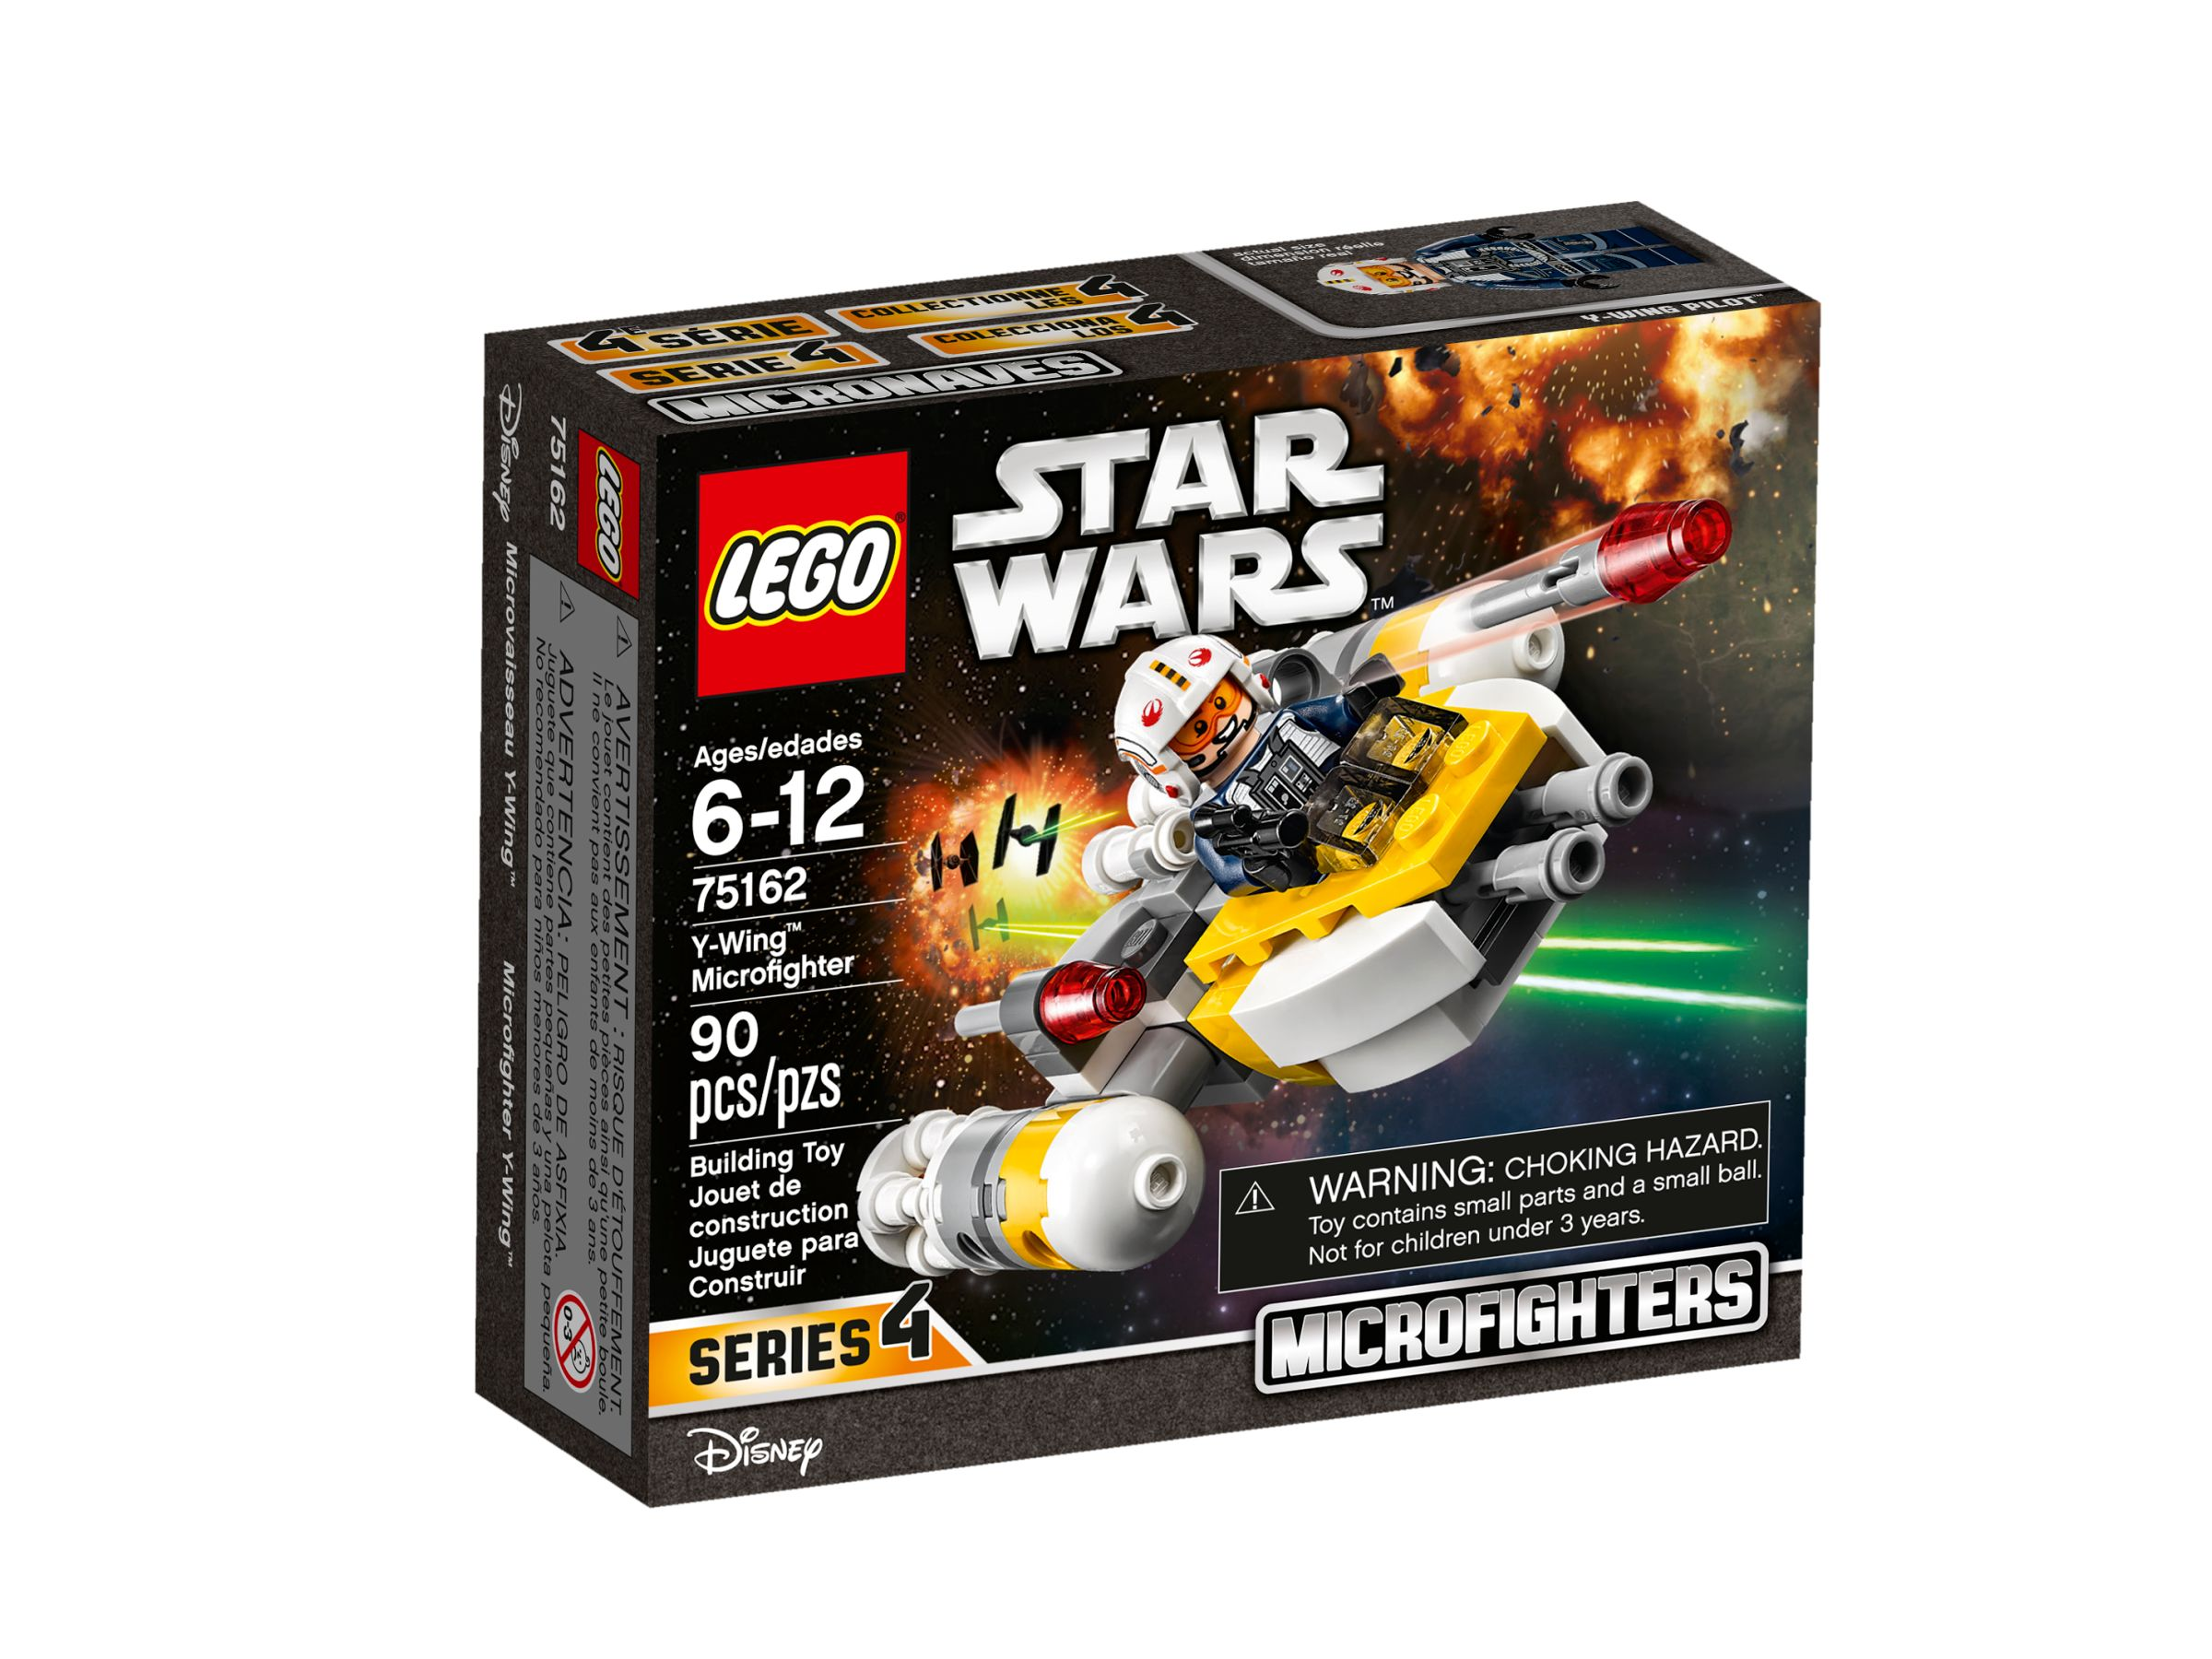 LEGO Star Wars 75162 Y-Wing™ Microfighter LEGO_75162_alt1.jpg